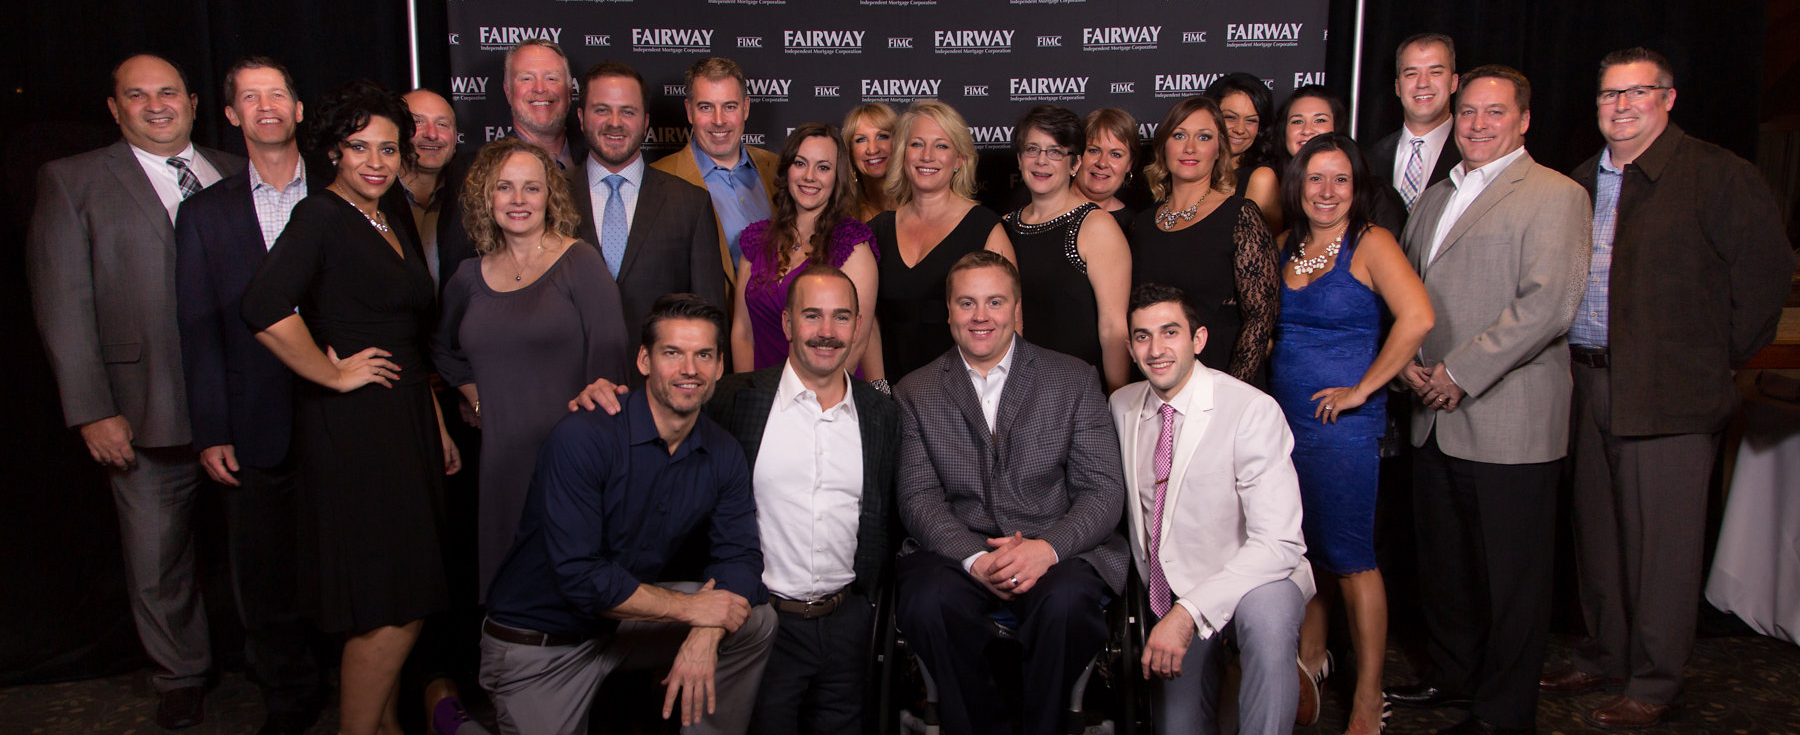 Fairway Mortgage Holiday Party